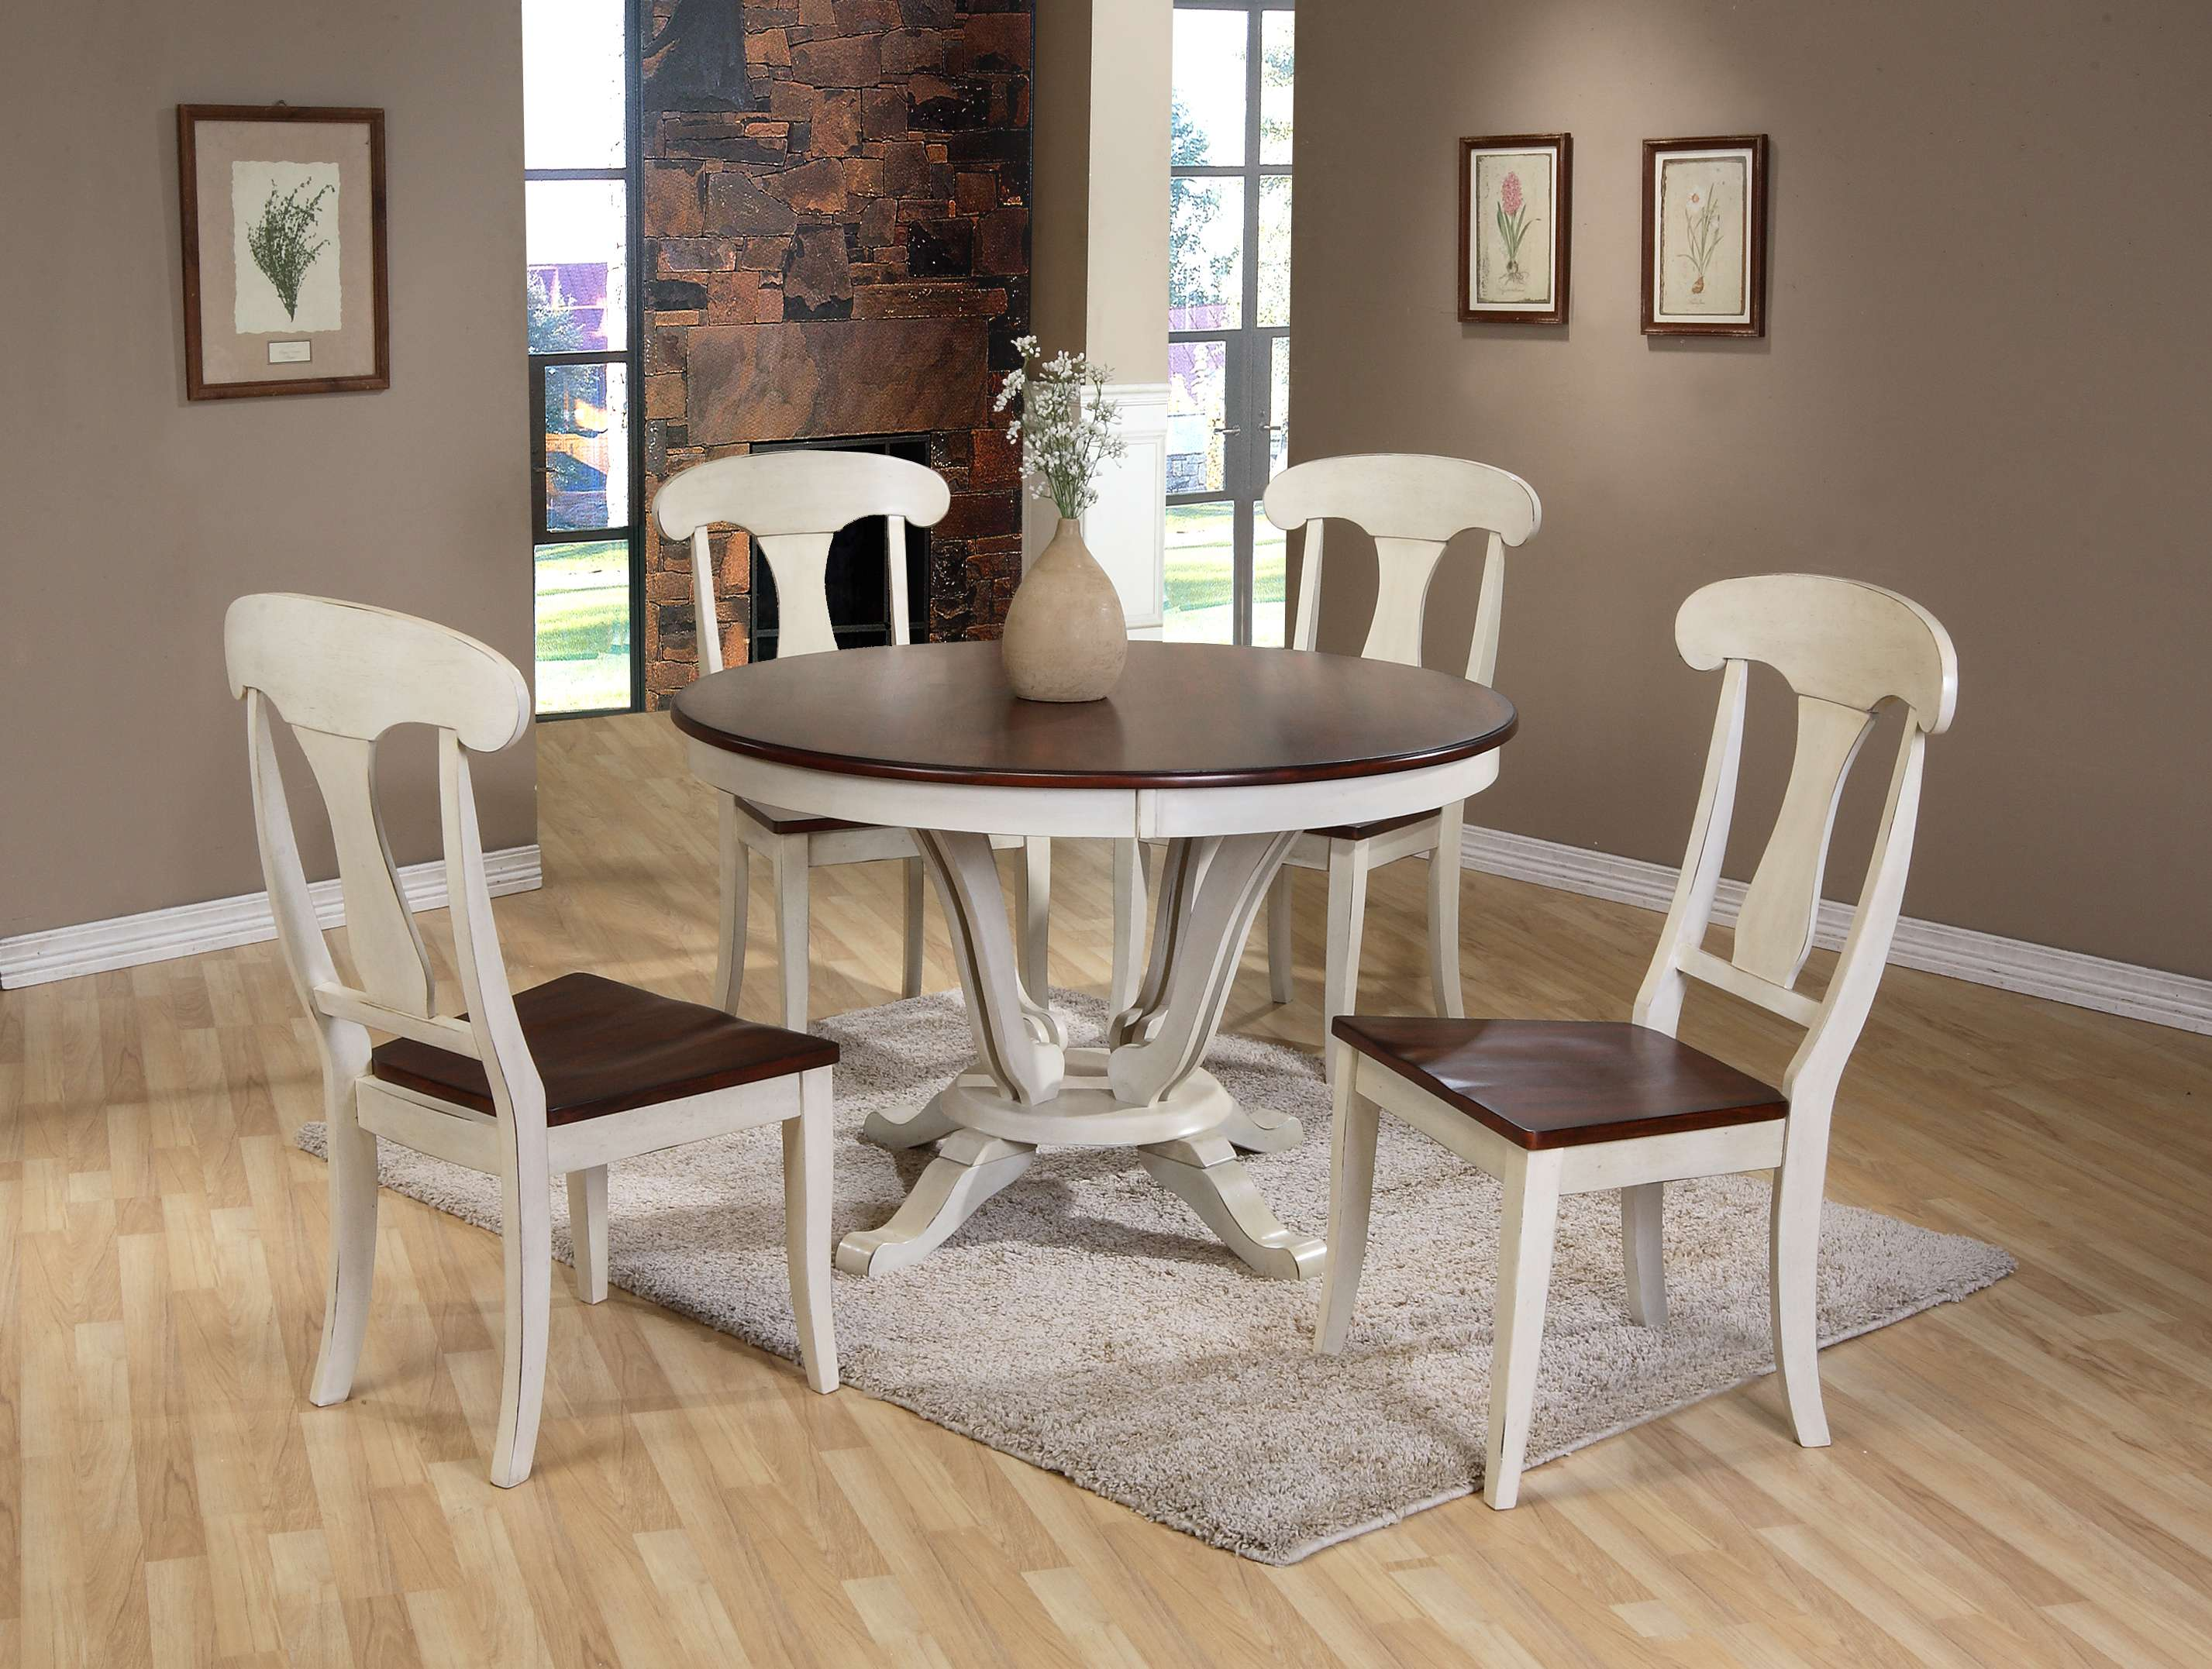 Surprising Baxton Studio 119 6591 6592 Gdk Gmtry Best Dining Table And Chair Ideas Images Gmtryco